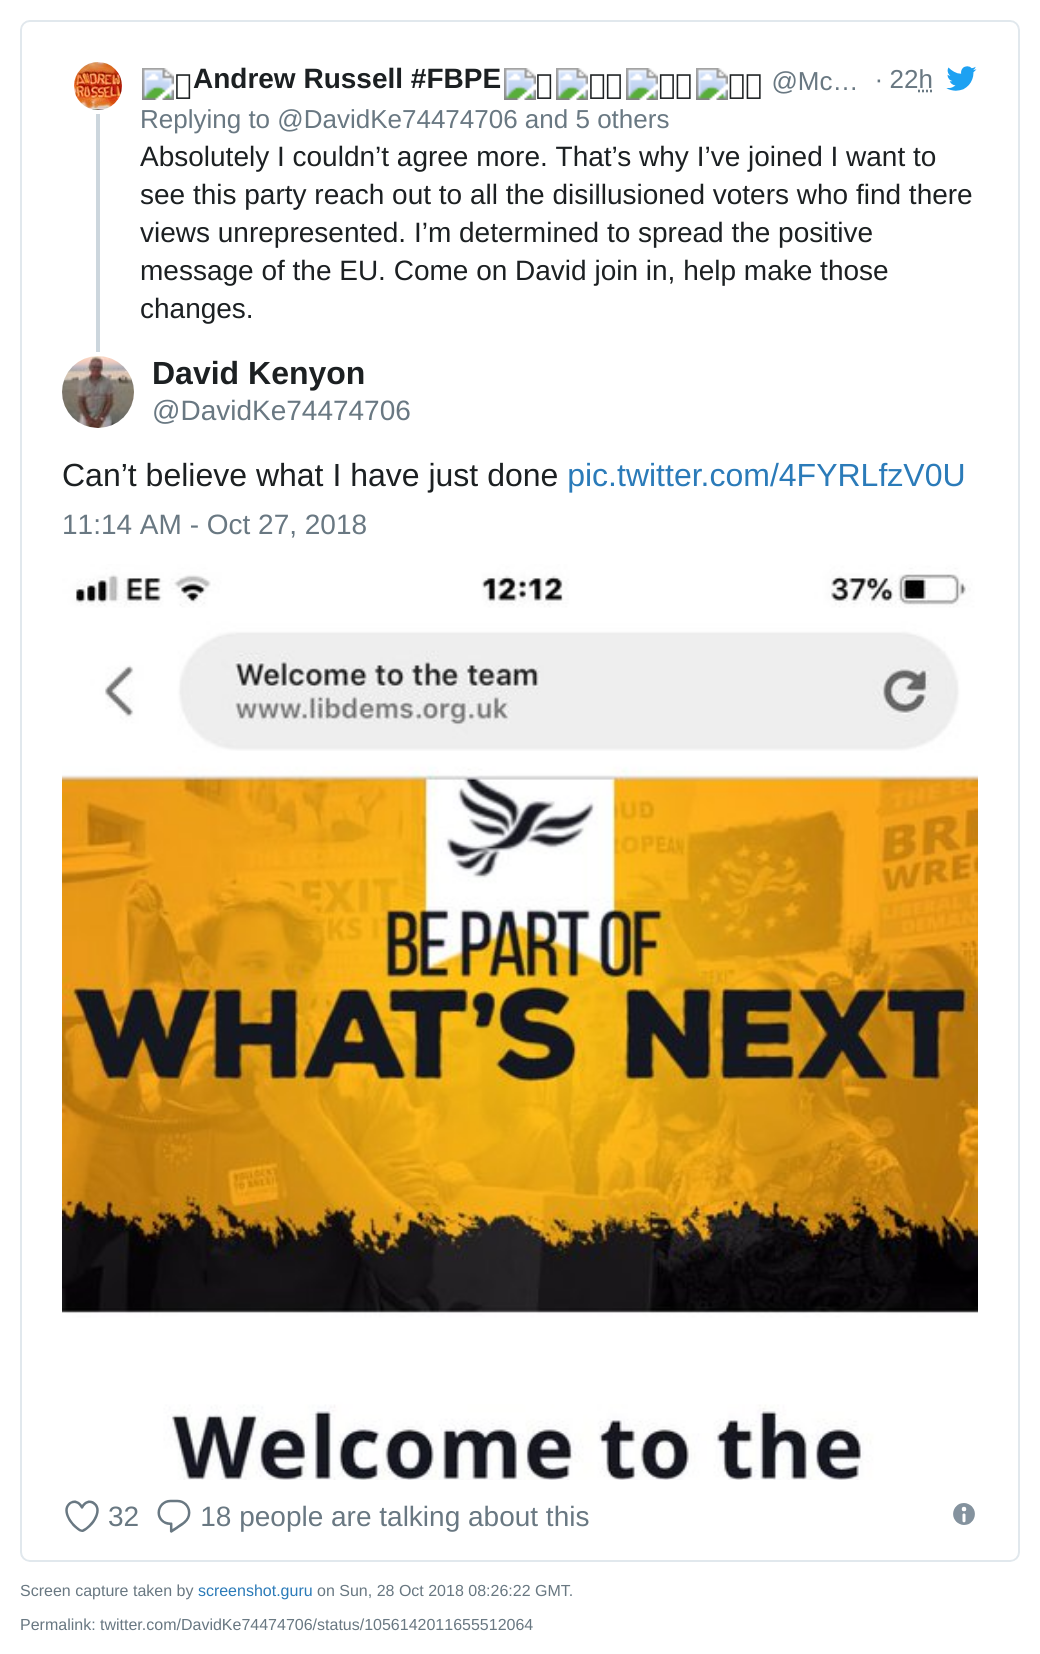 Daid Kenyon joins Lib Dems